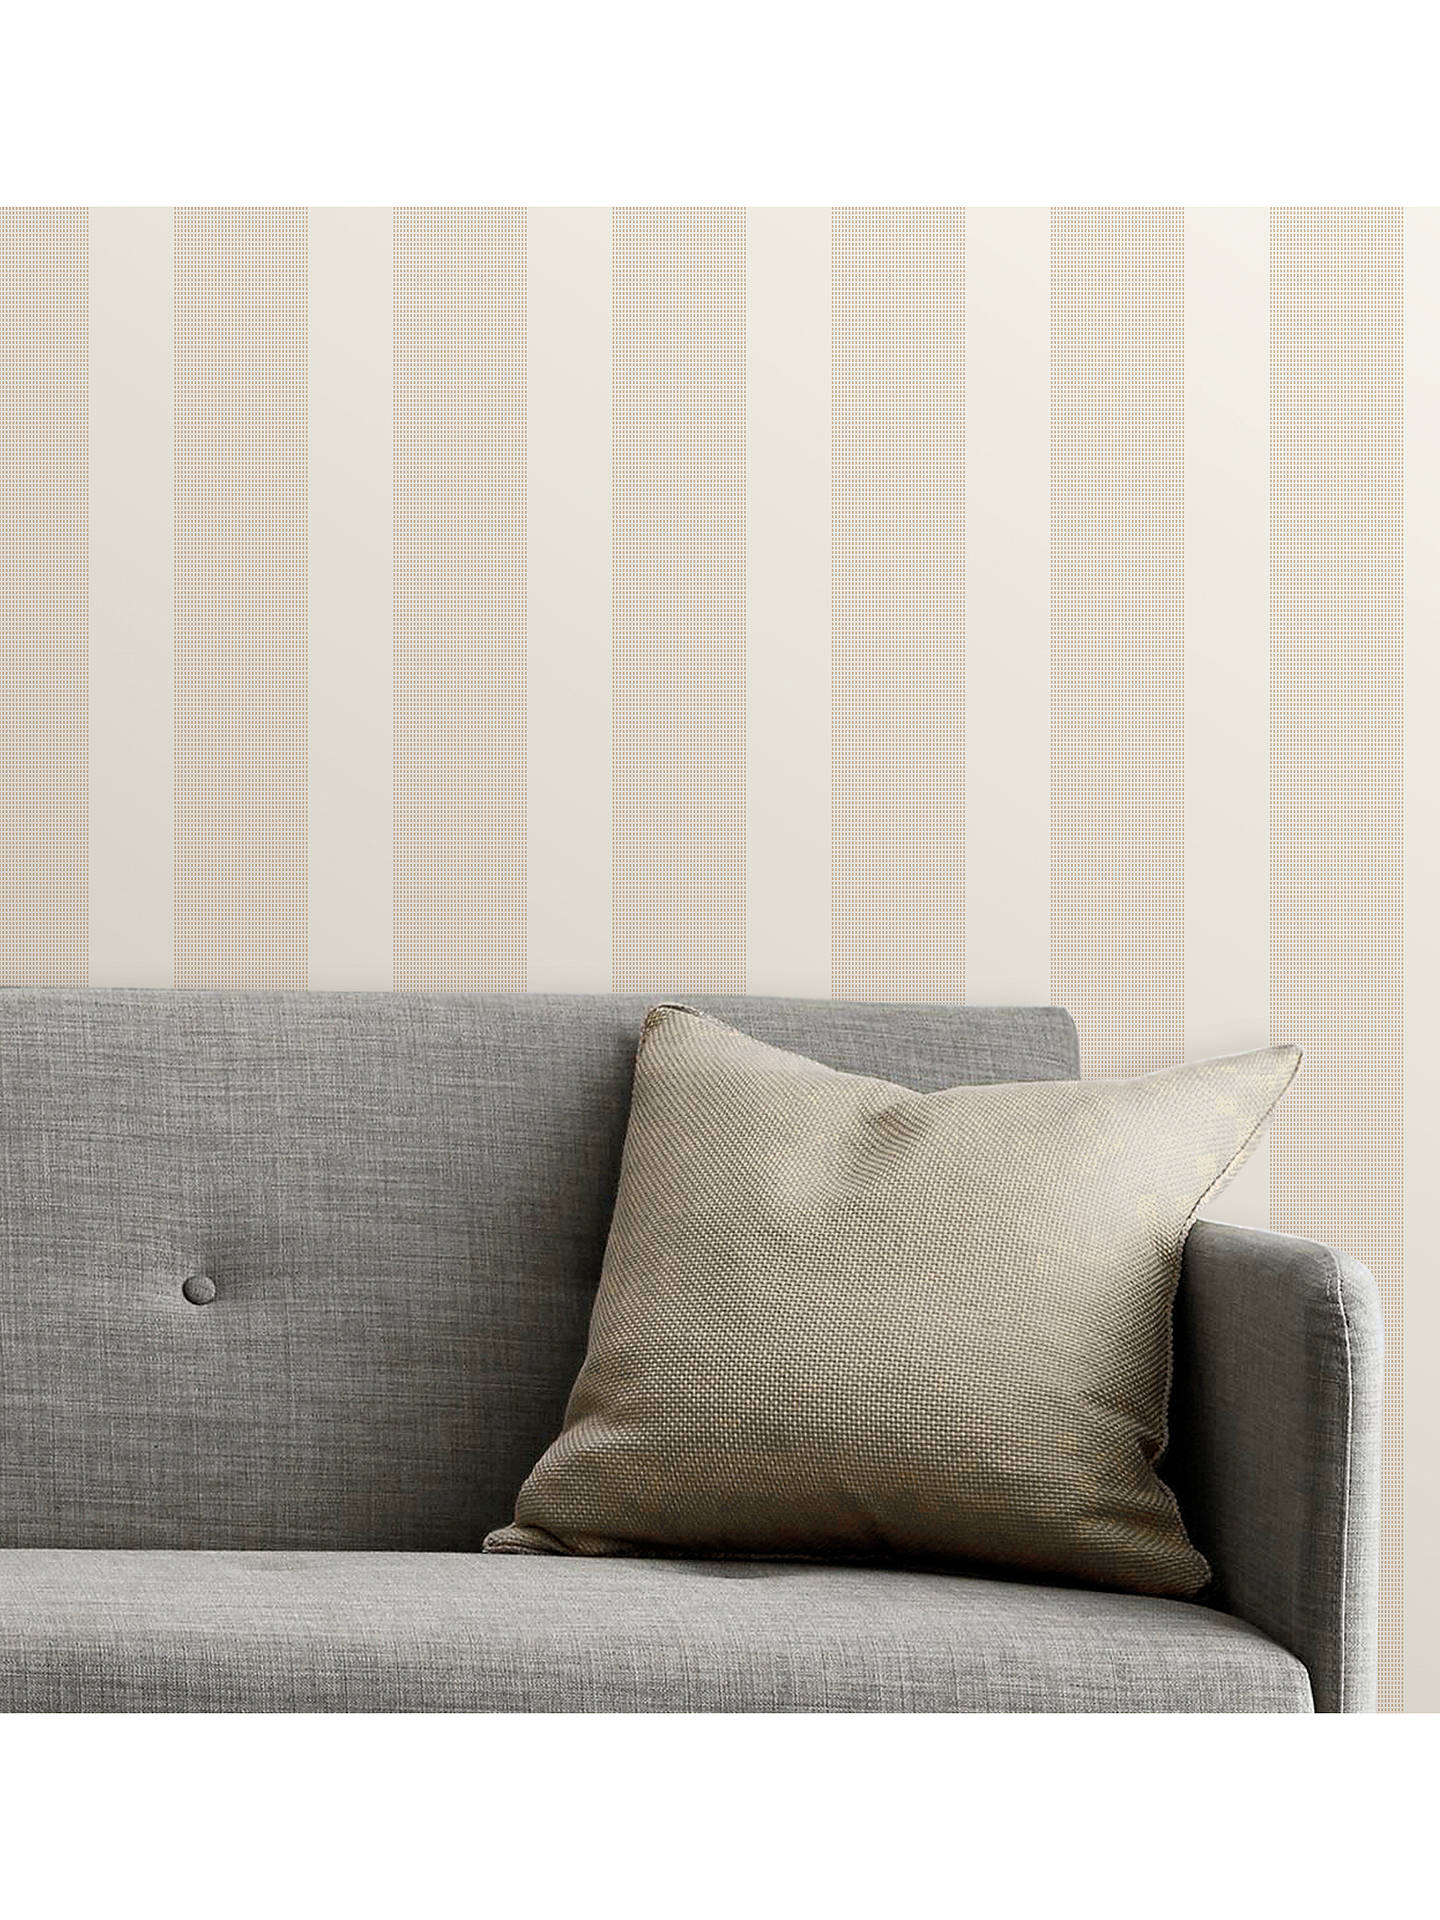 Buy Terence Conran Visby Stripe Wallpaper, TC25209 Online at johnlewis.com